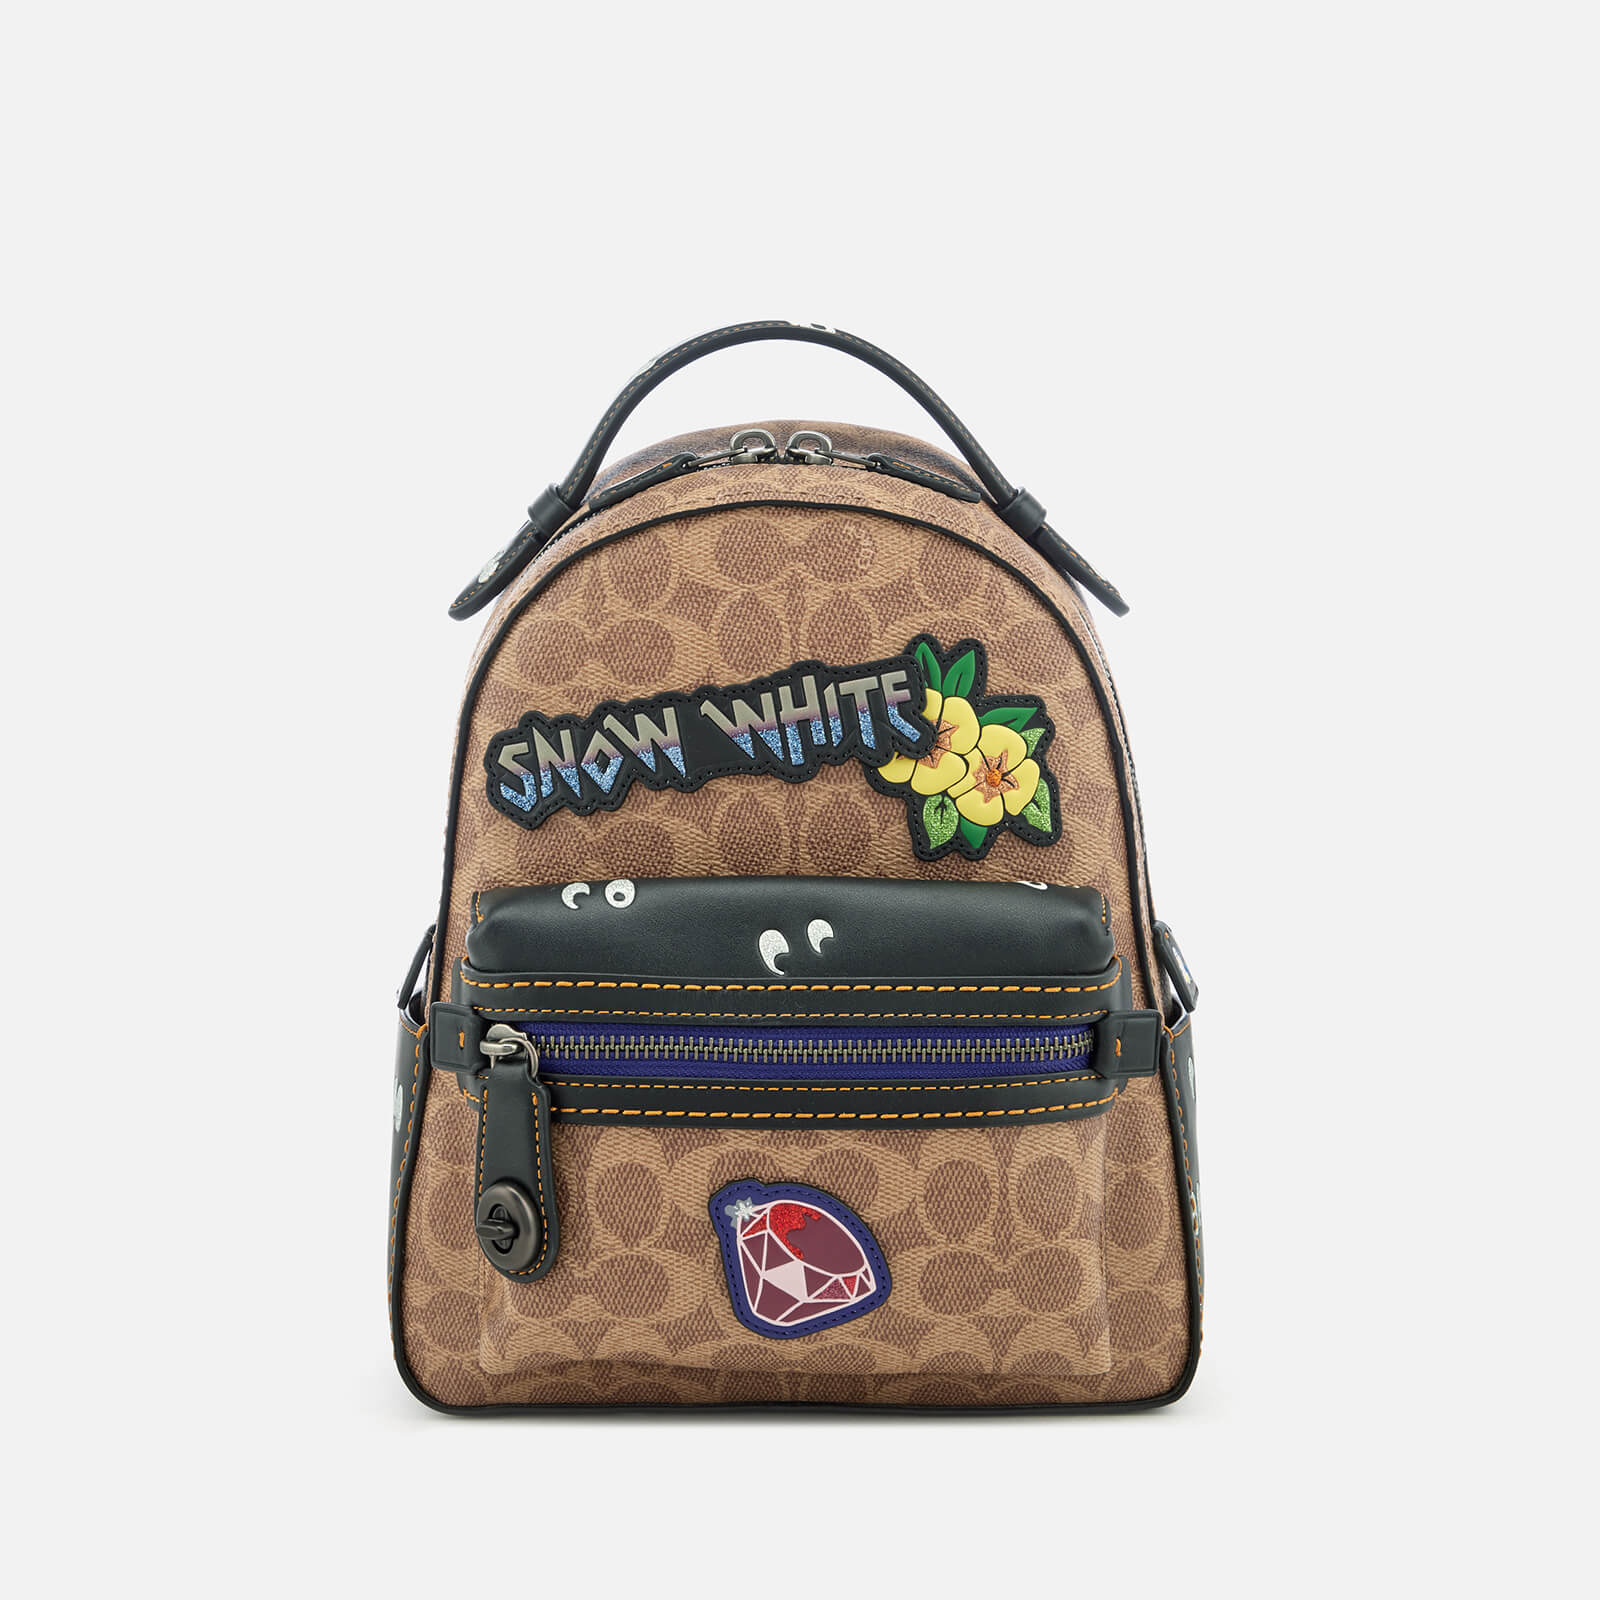 70c43569fbb4 Coach 1941 Women s Disney X Coach Coated Canvas Snow White Campus Backpack  23 - Tan Black Multi - Free UK Delivery over £50